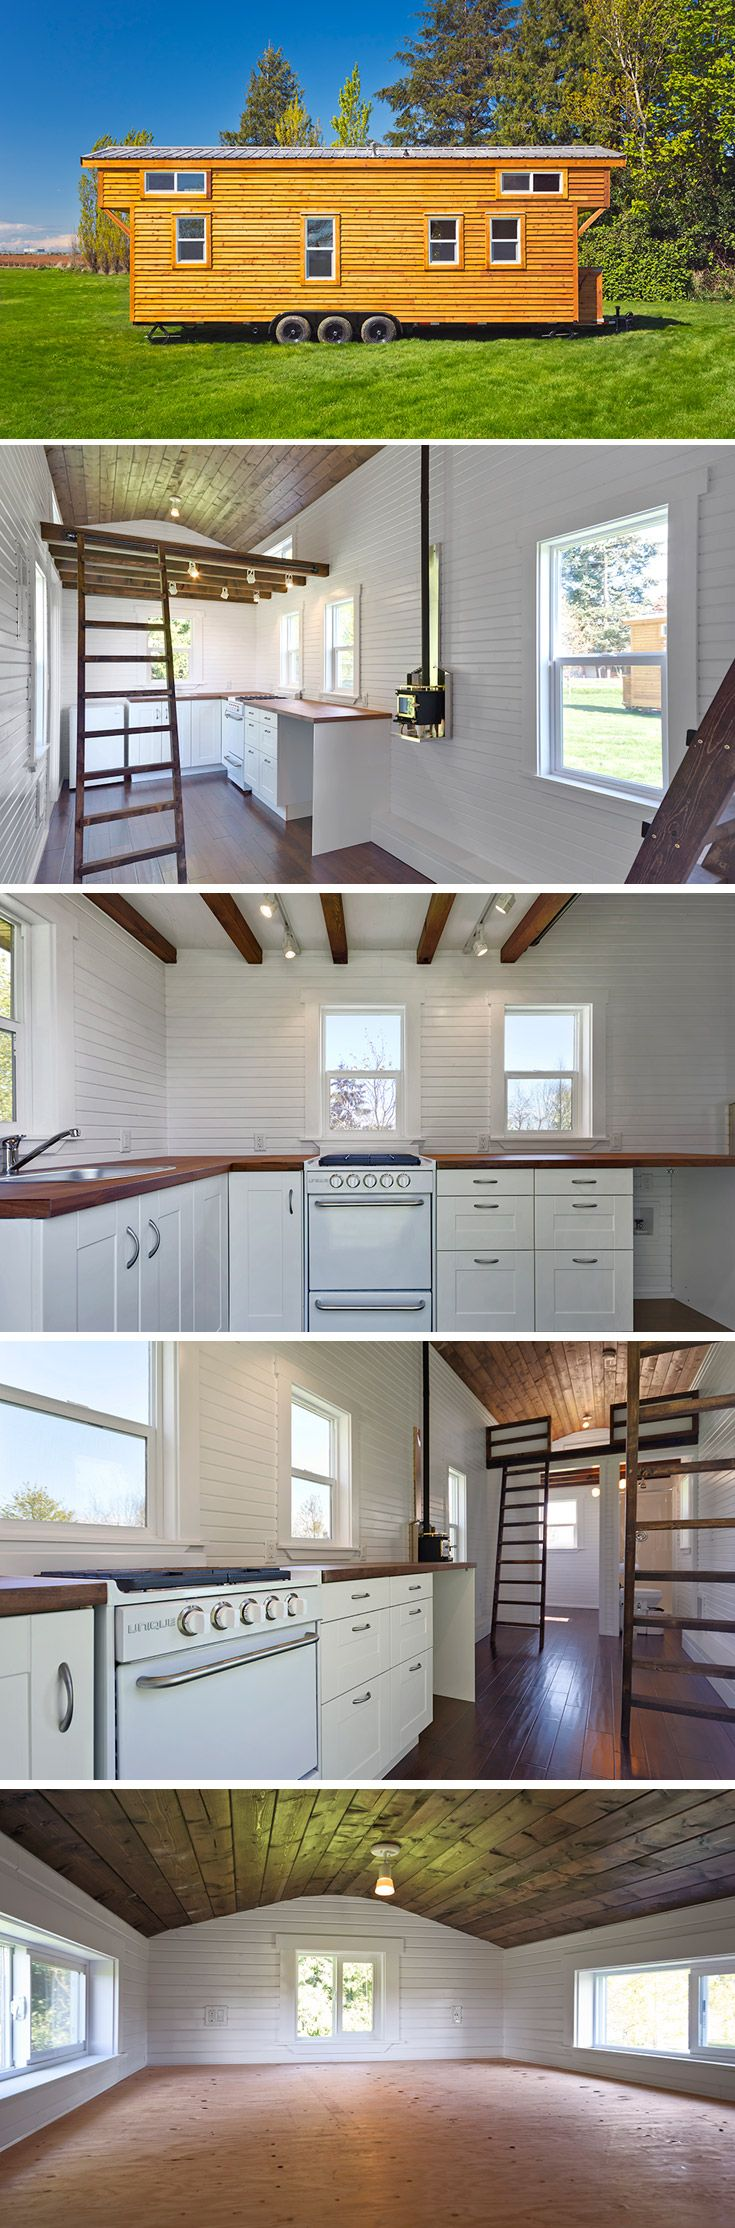 The Loft Edition is Mint Tiny Homes' largest tiny house with trailers available from 24′ to 30′.